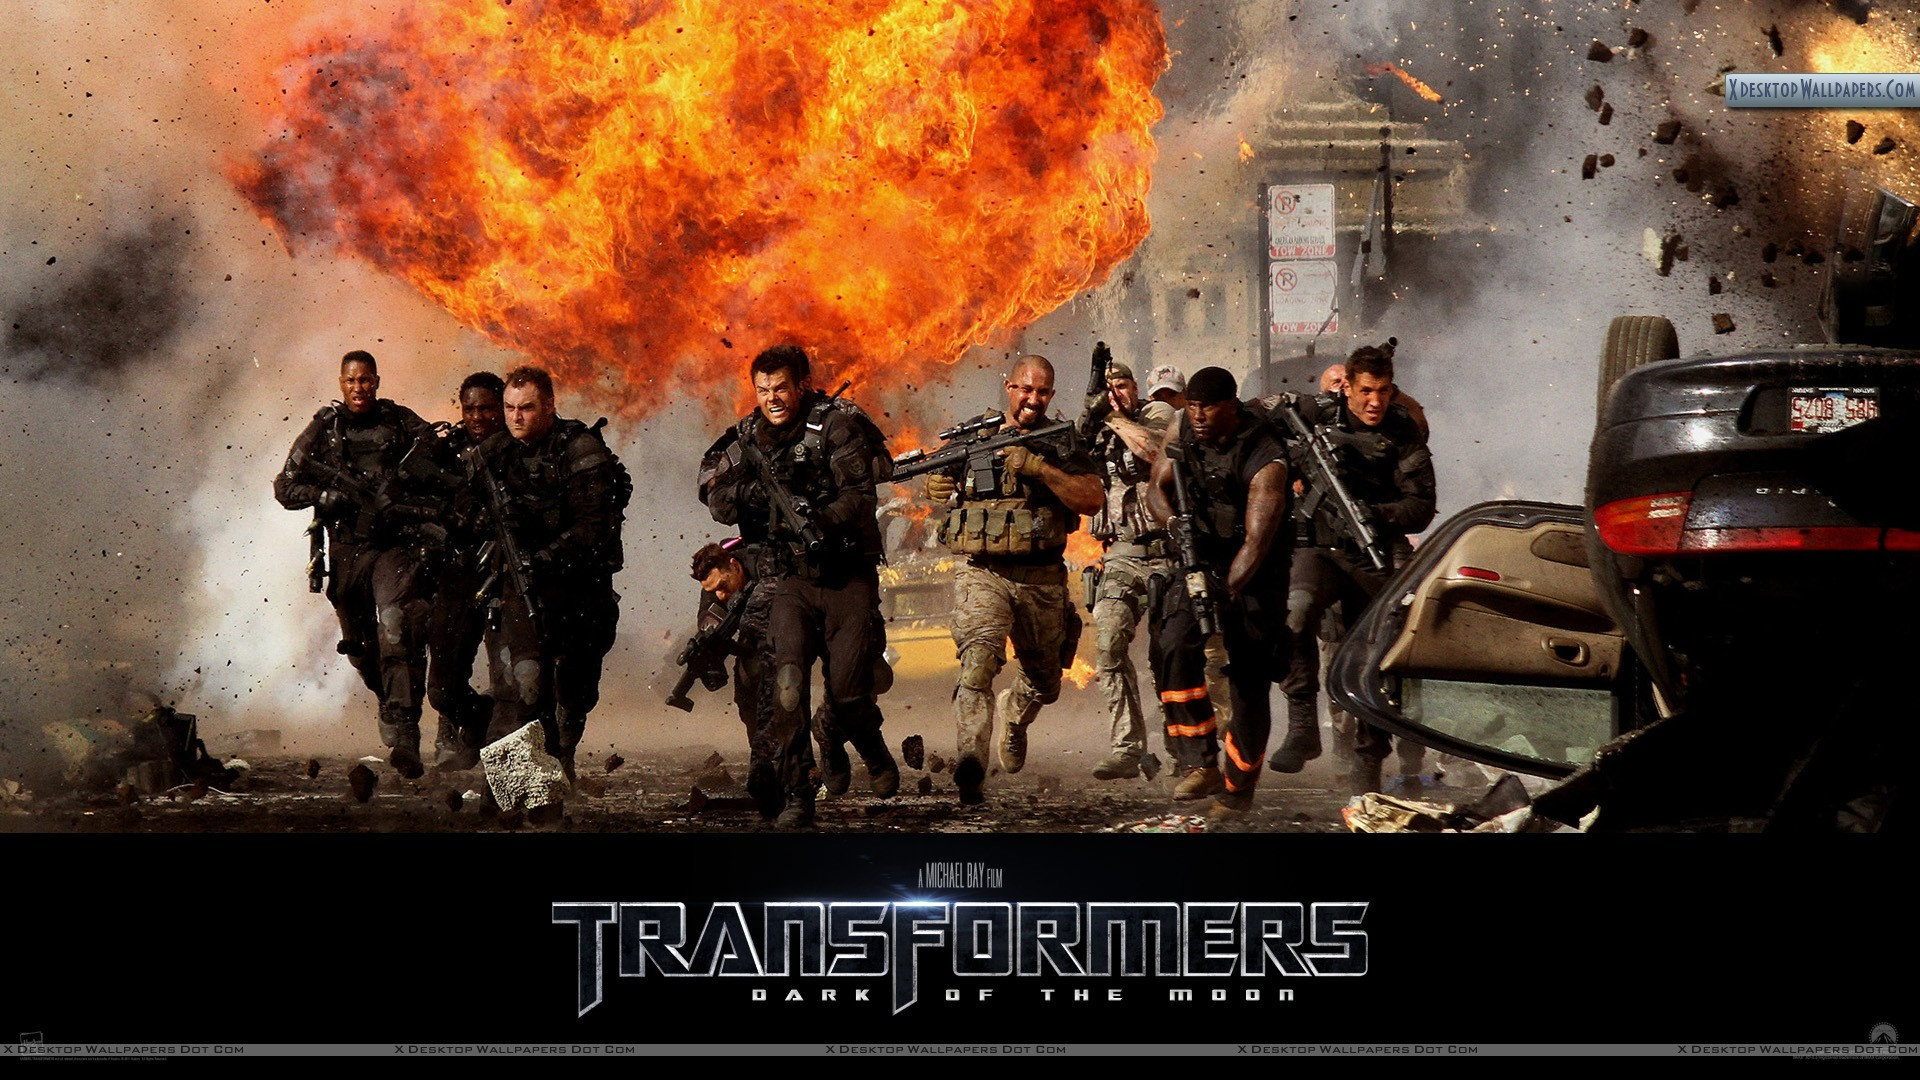 soldiers running in transformers 3 dark of the moon wallpaper